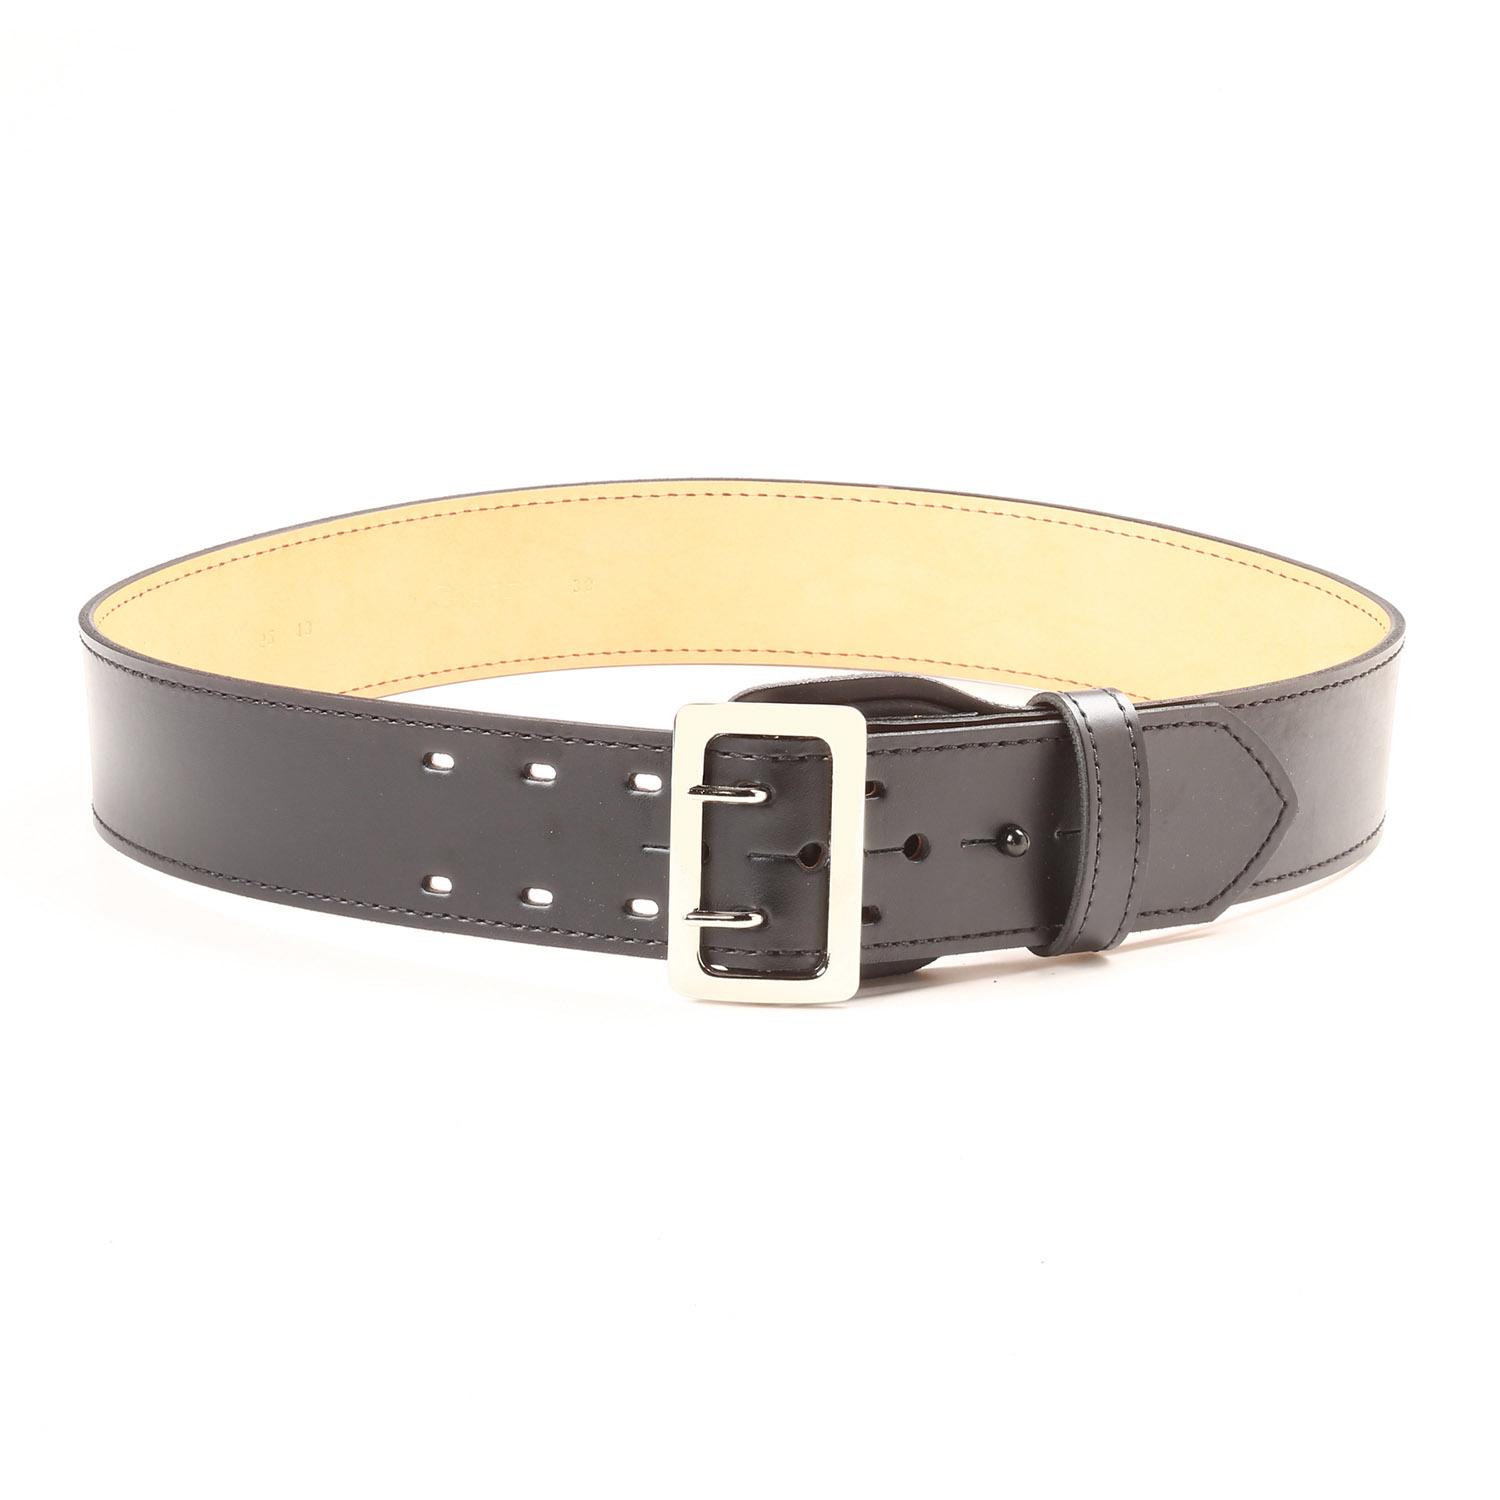 galls gear leather sam browne duty belt